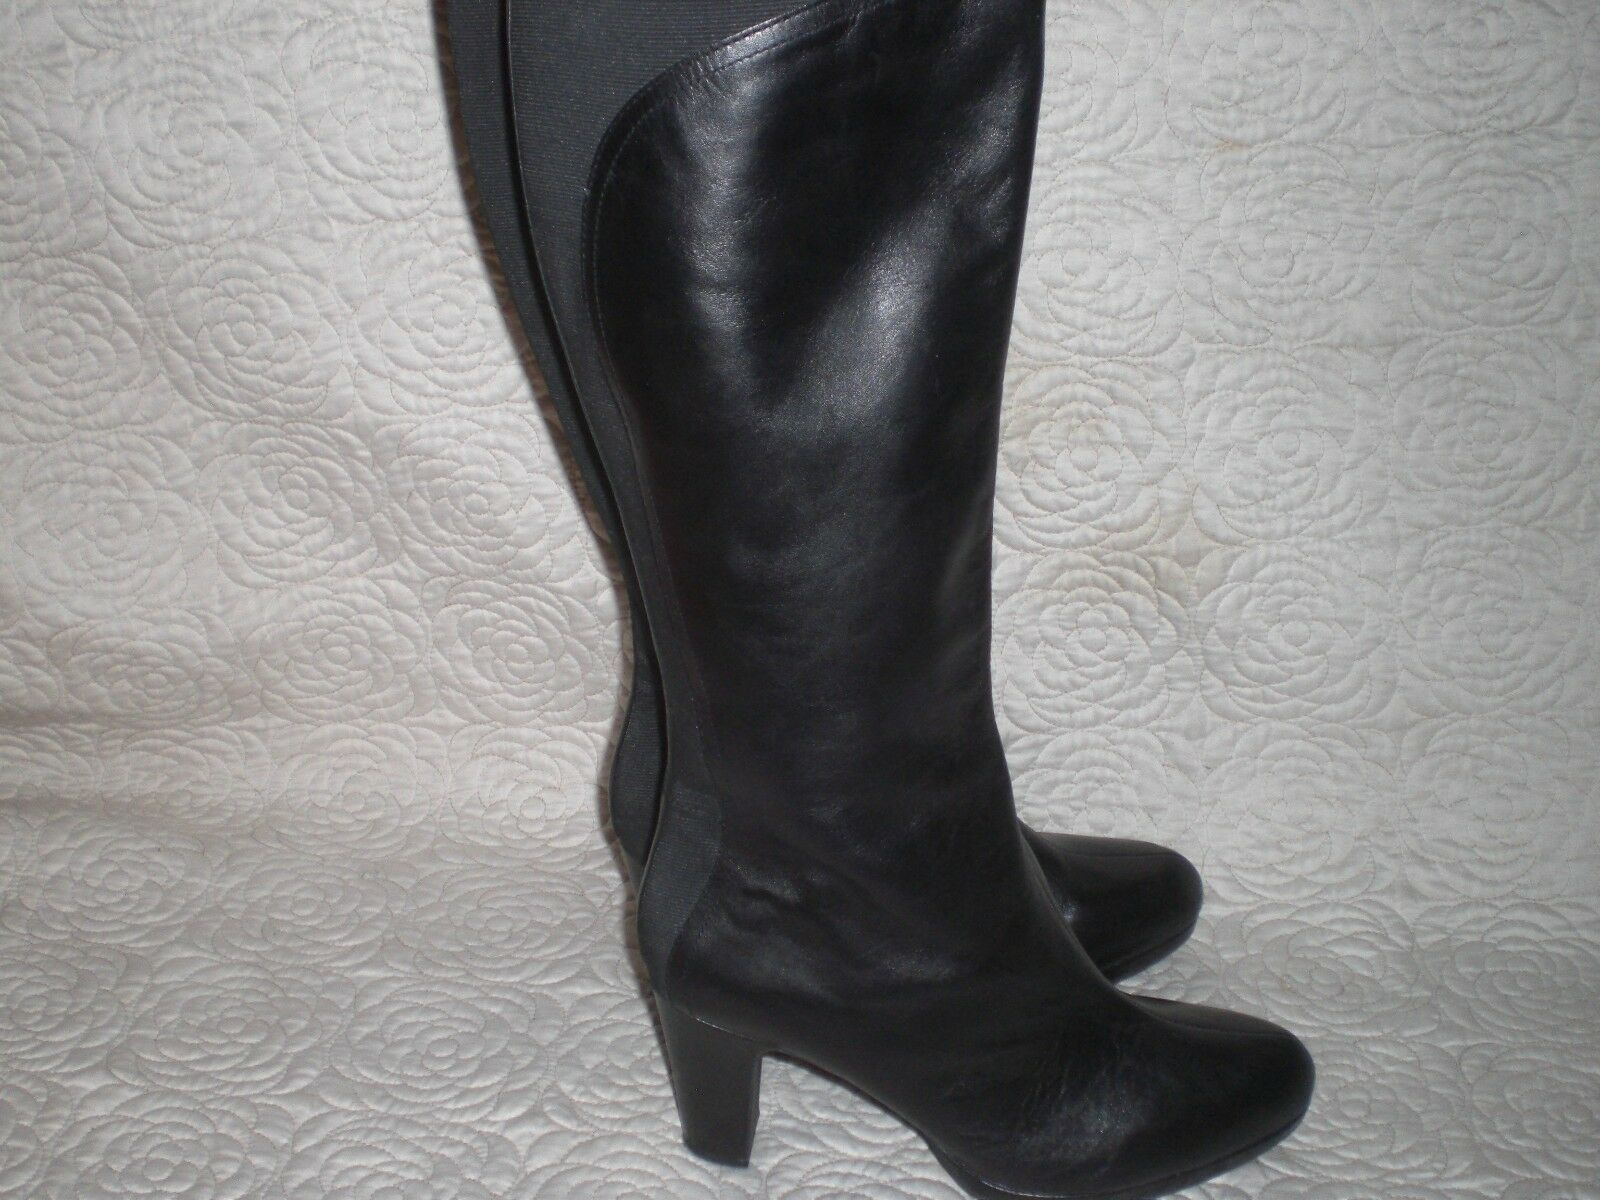 ELLEN TRACY KATRINA BLACK LEATHER  WILD CALF BOOTS  SIZE 11 M